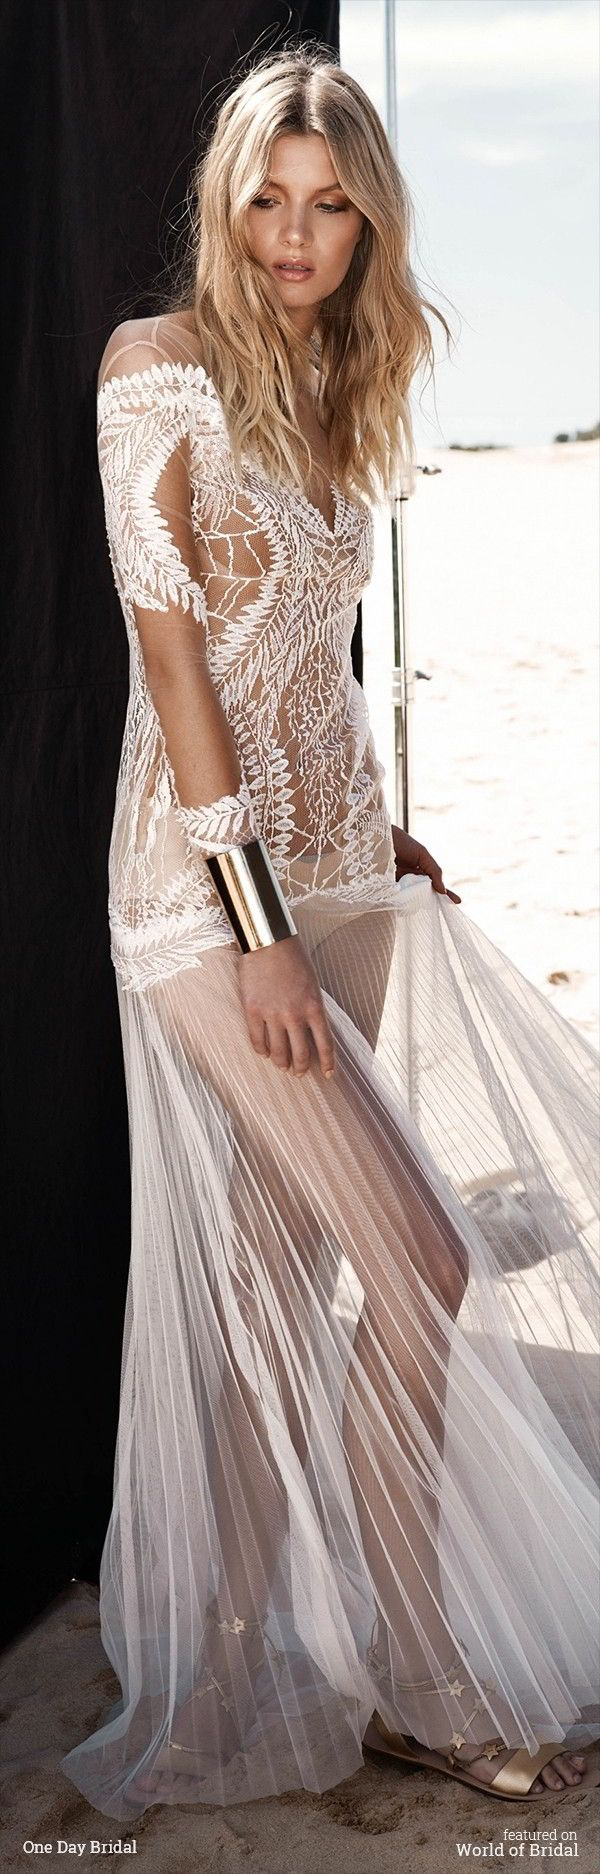 600 best Half Sheer Wedding Gowns for the Daring Bride images on ...